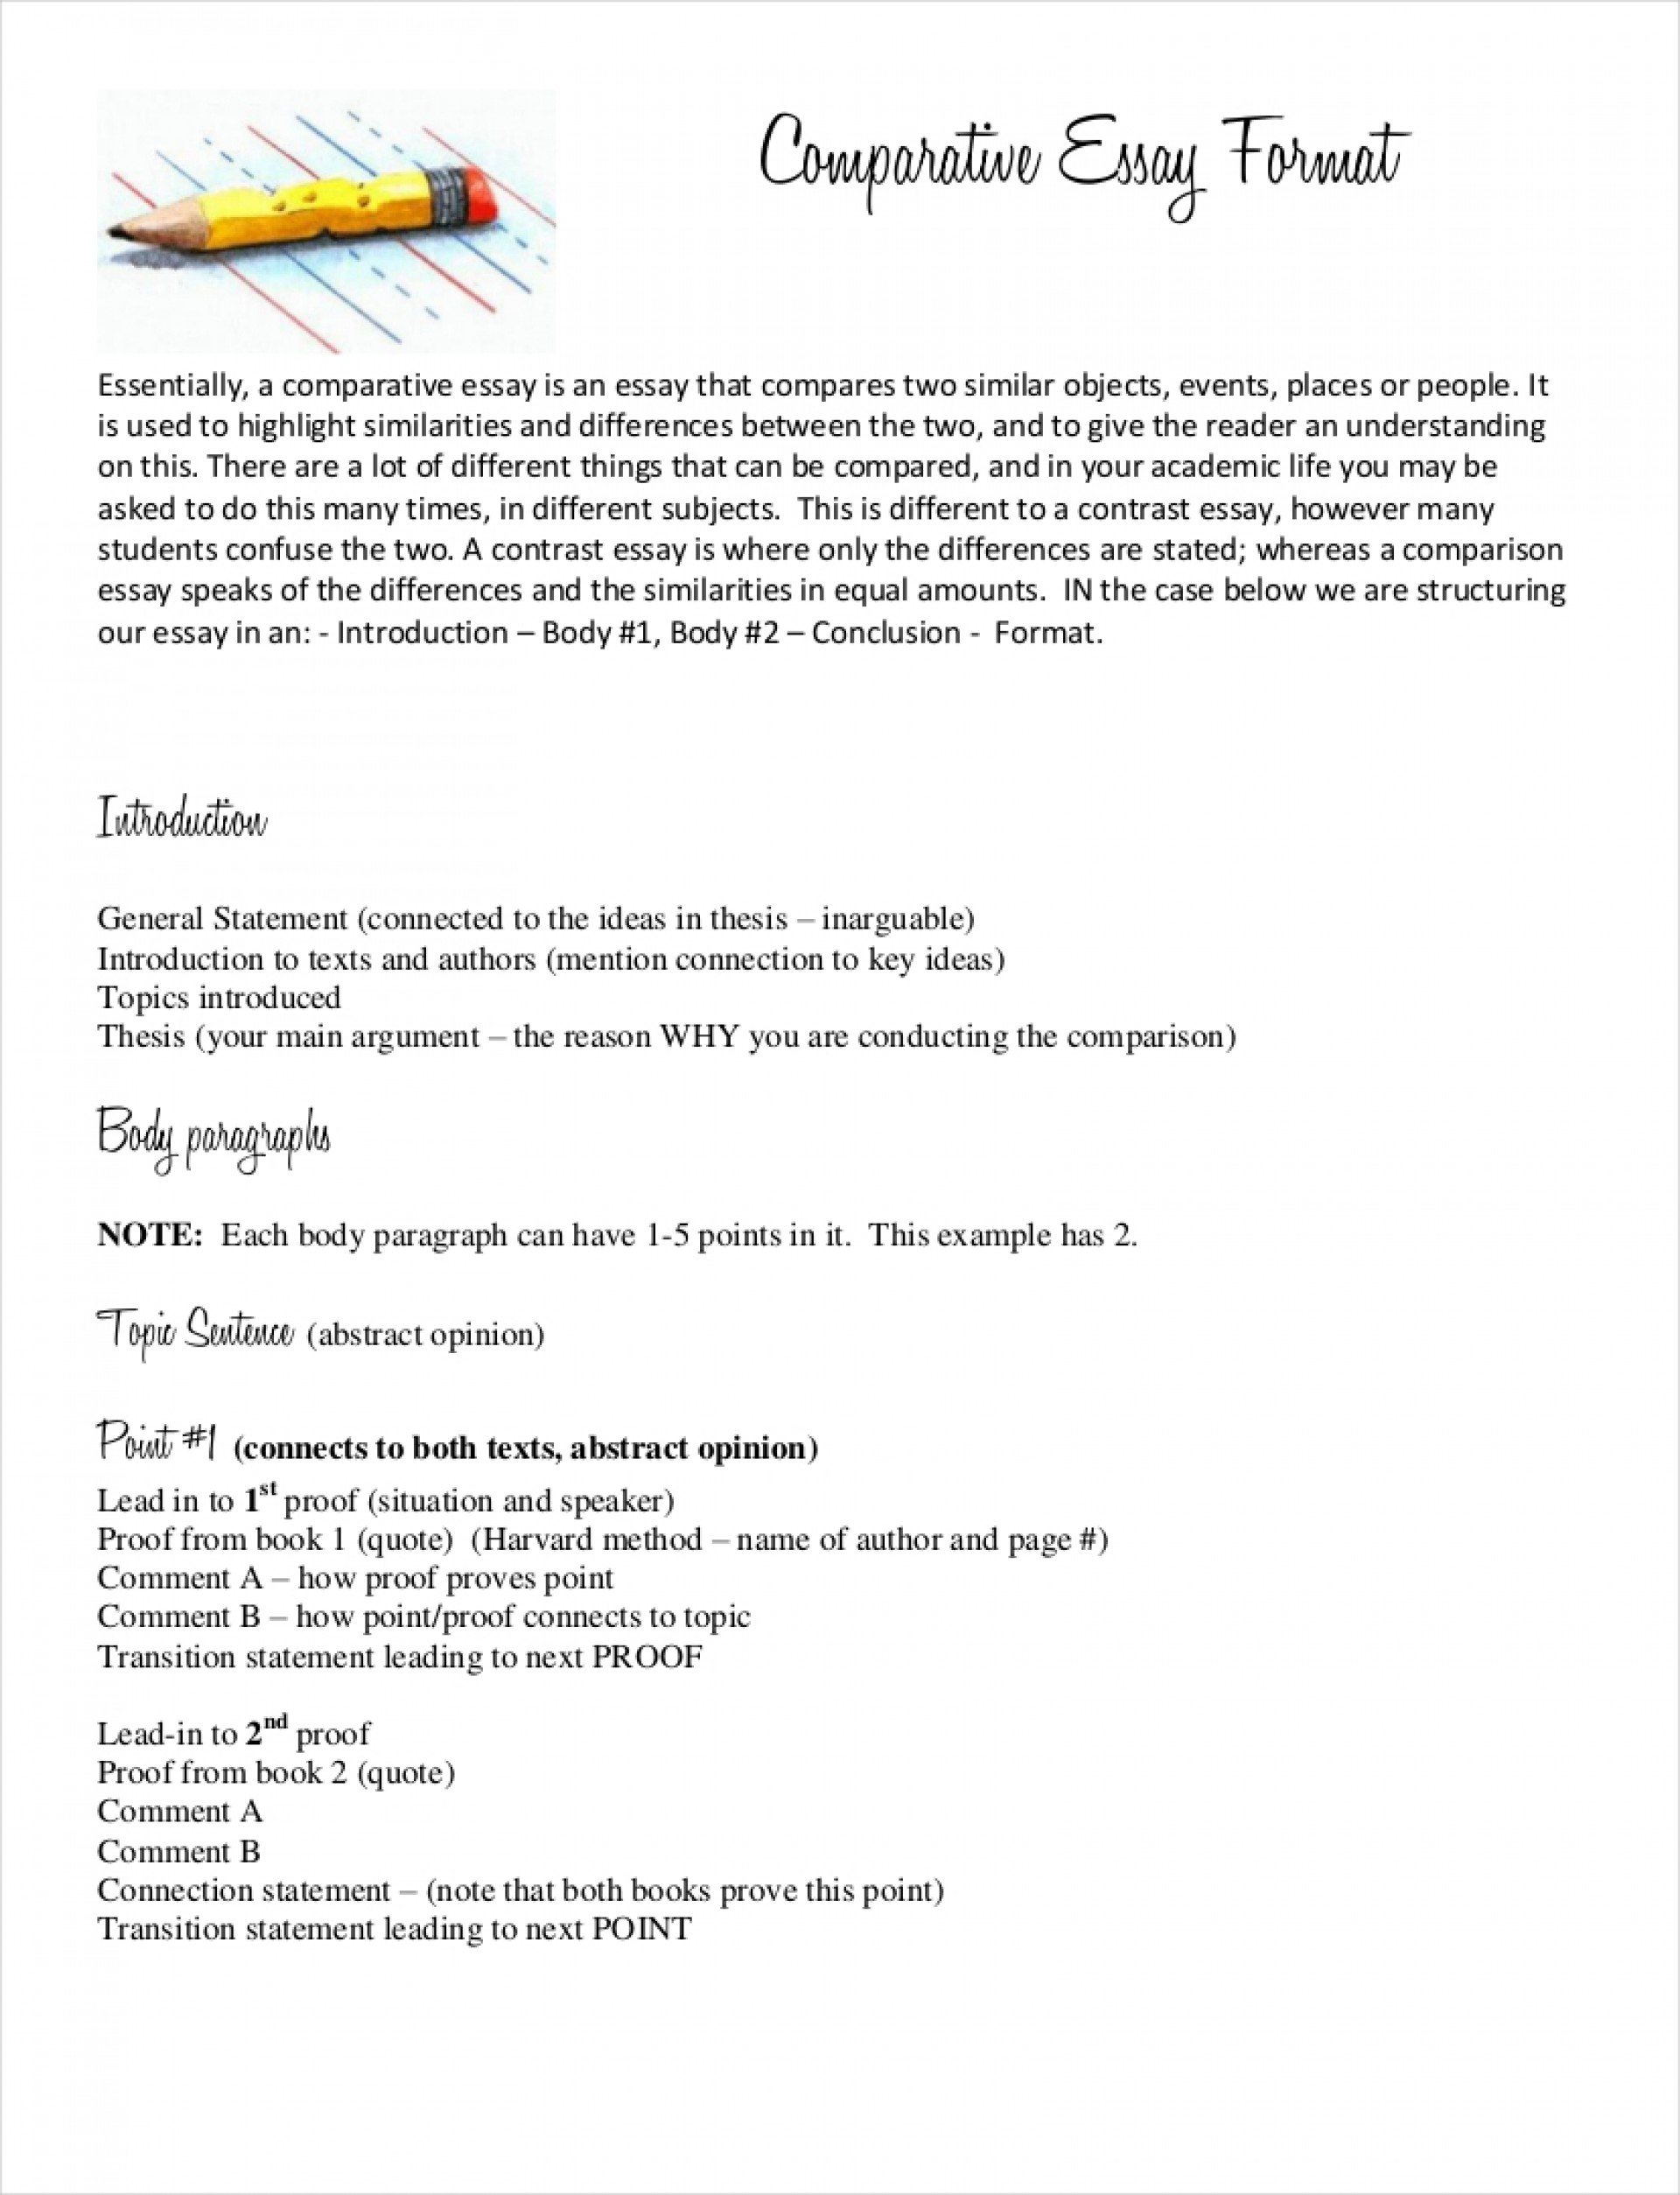 006 Comparative Essay Example Good Cover Letter Samples Sample Pdf Free Format Download W Unique Writing Rubric Structure 1920